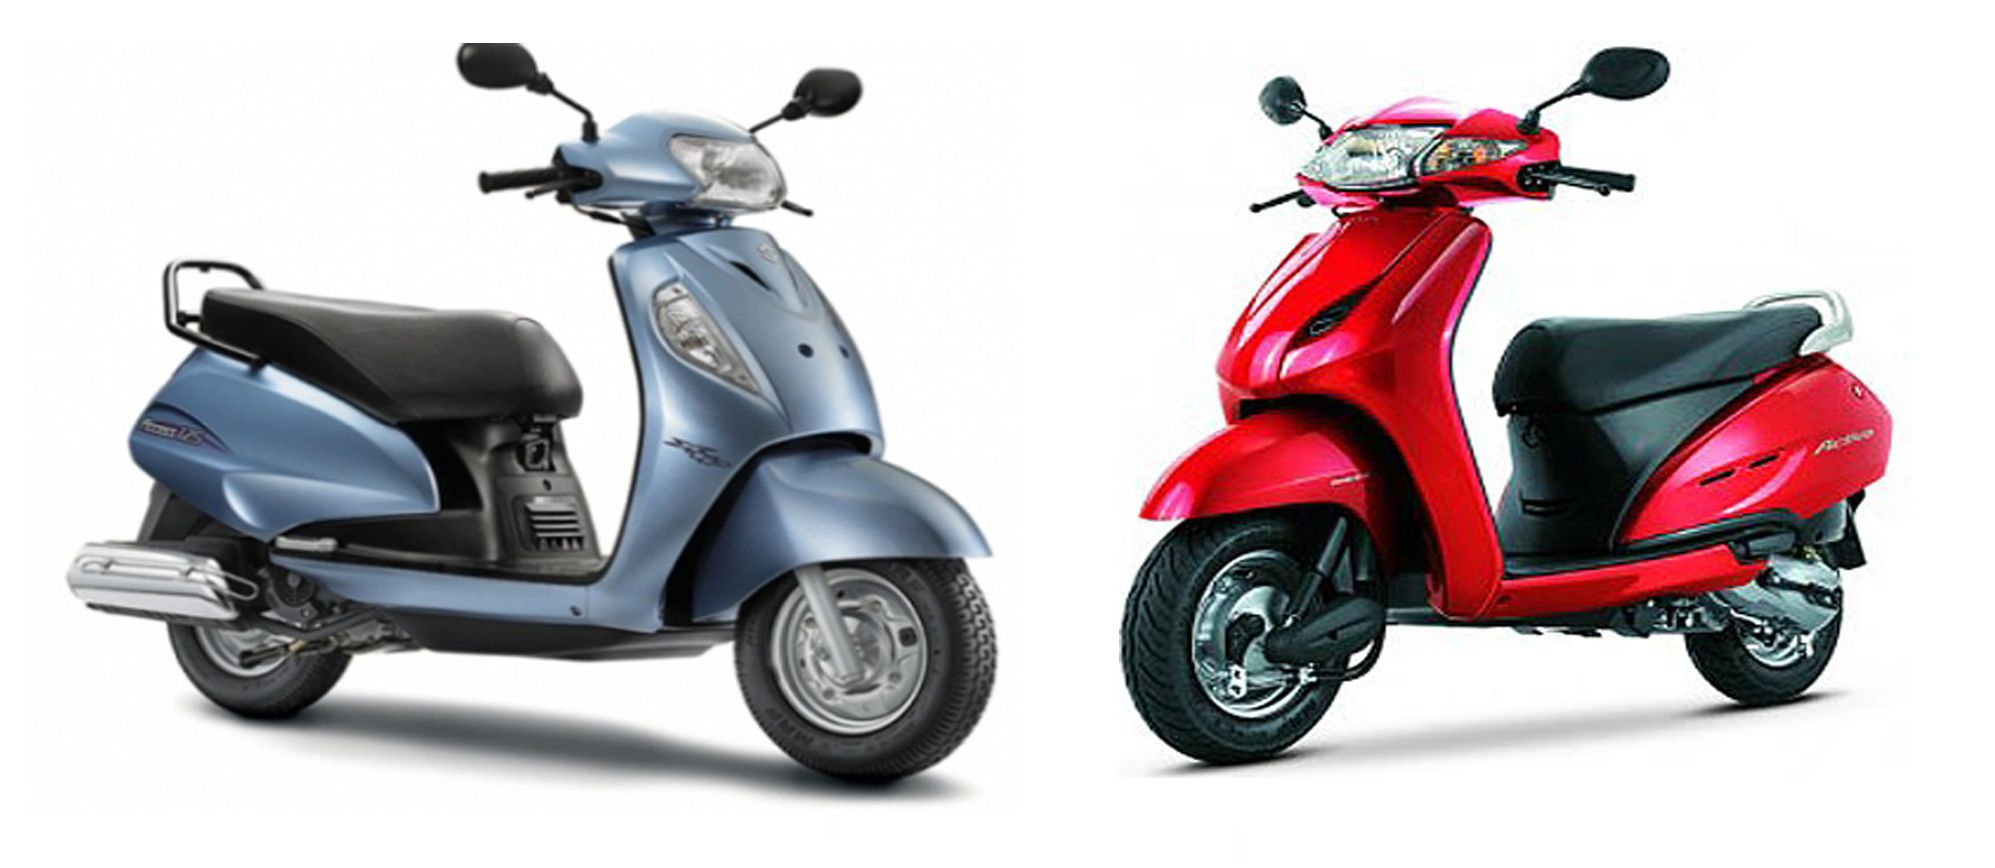 2014 Honda Activa Wallpapers Find Best Latest 2014 Honda Activa